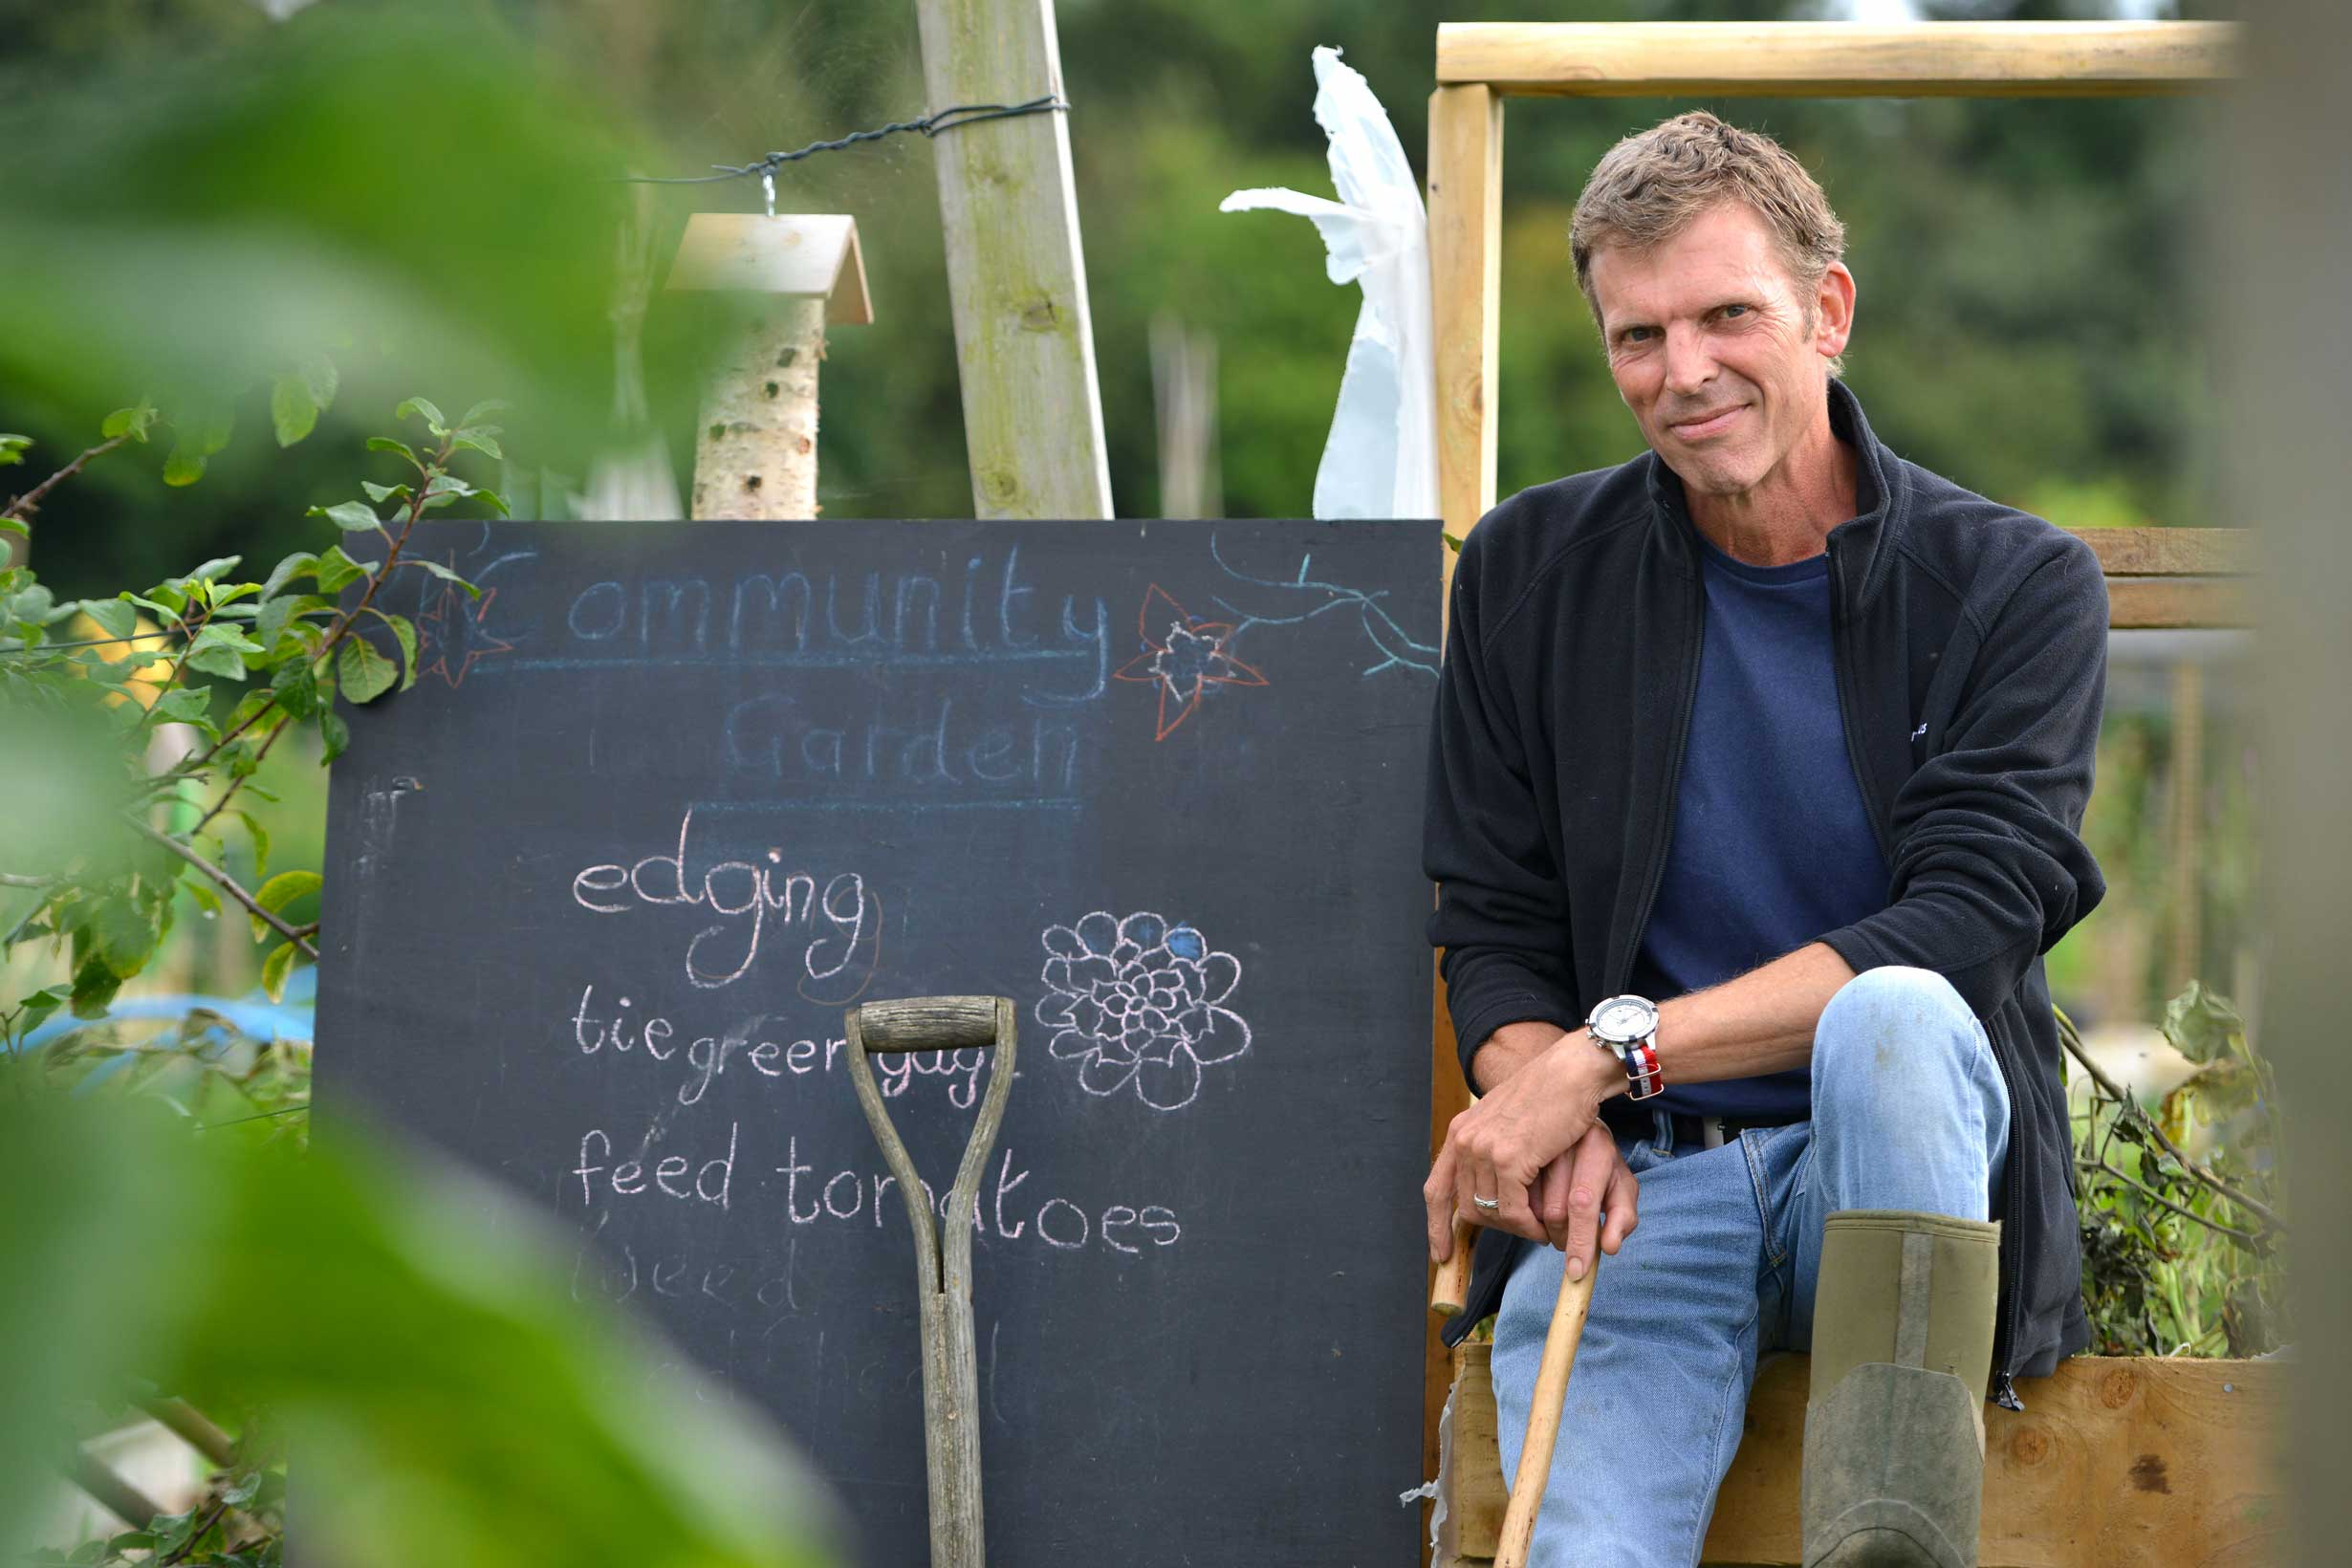 Man at community garden beside the chalkboard notice